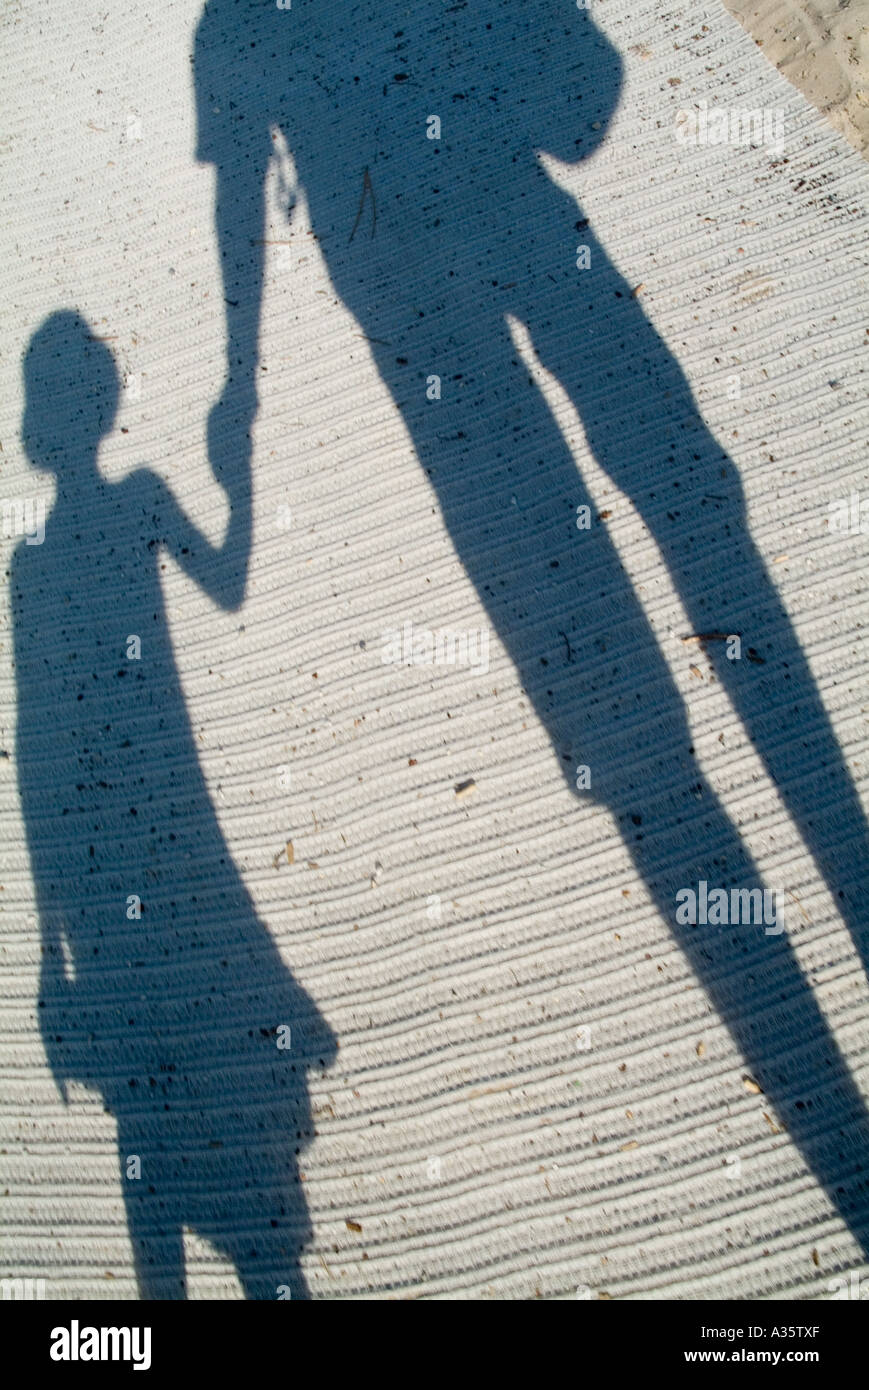 Shadow Of A Father And His Daughter Holding Hands Walking On A Mat